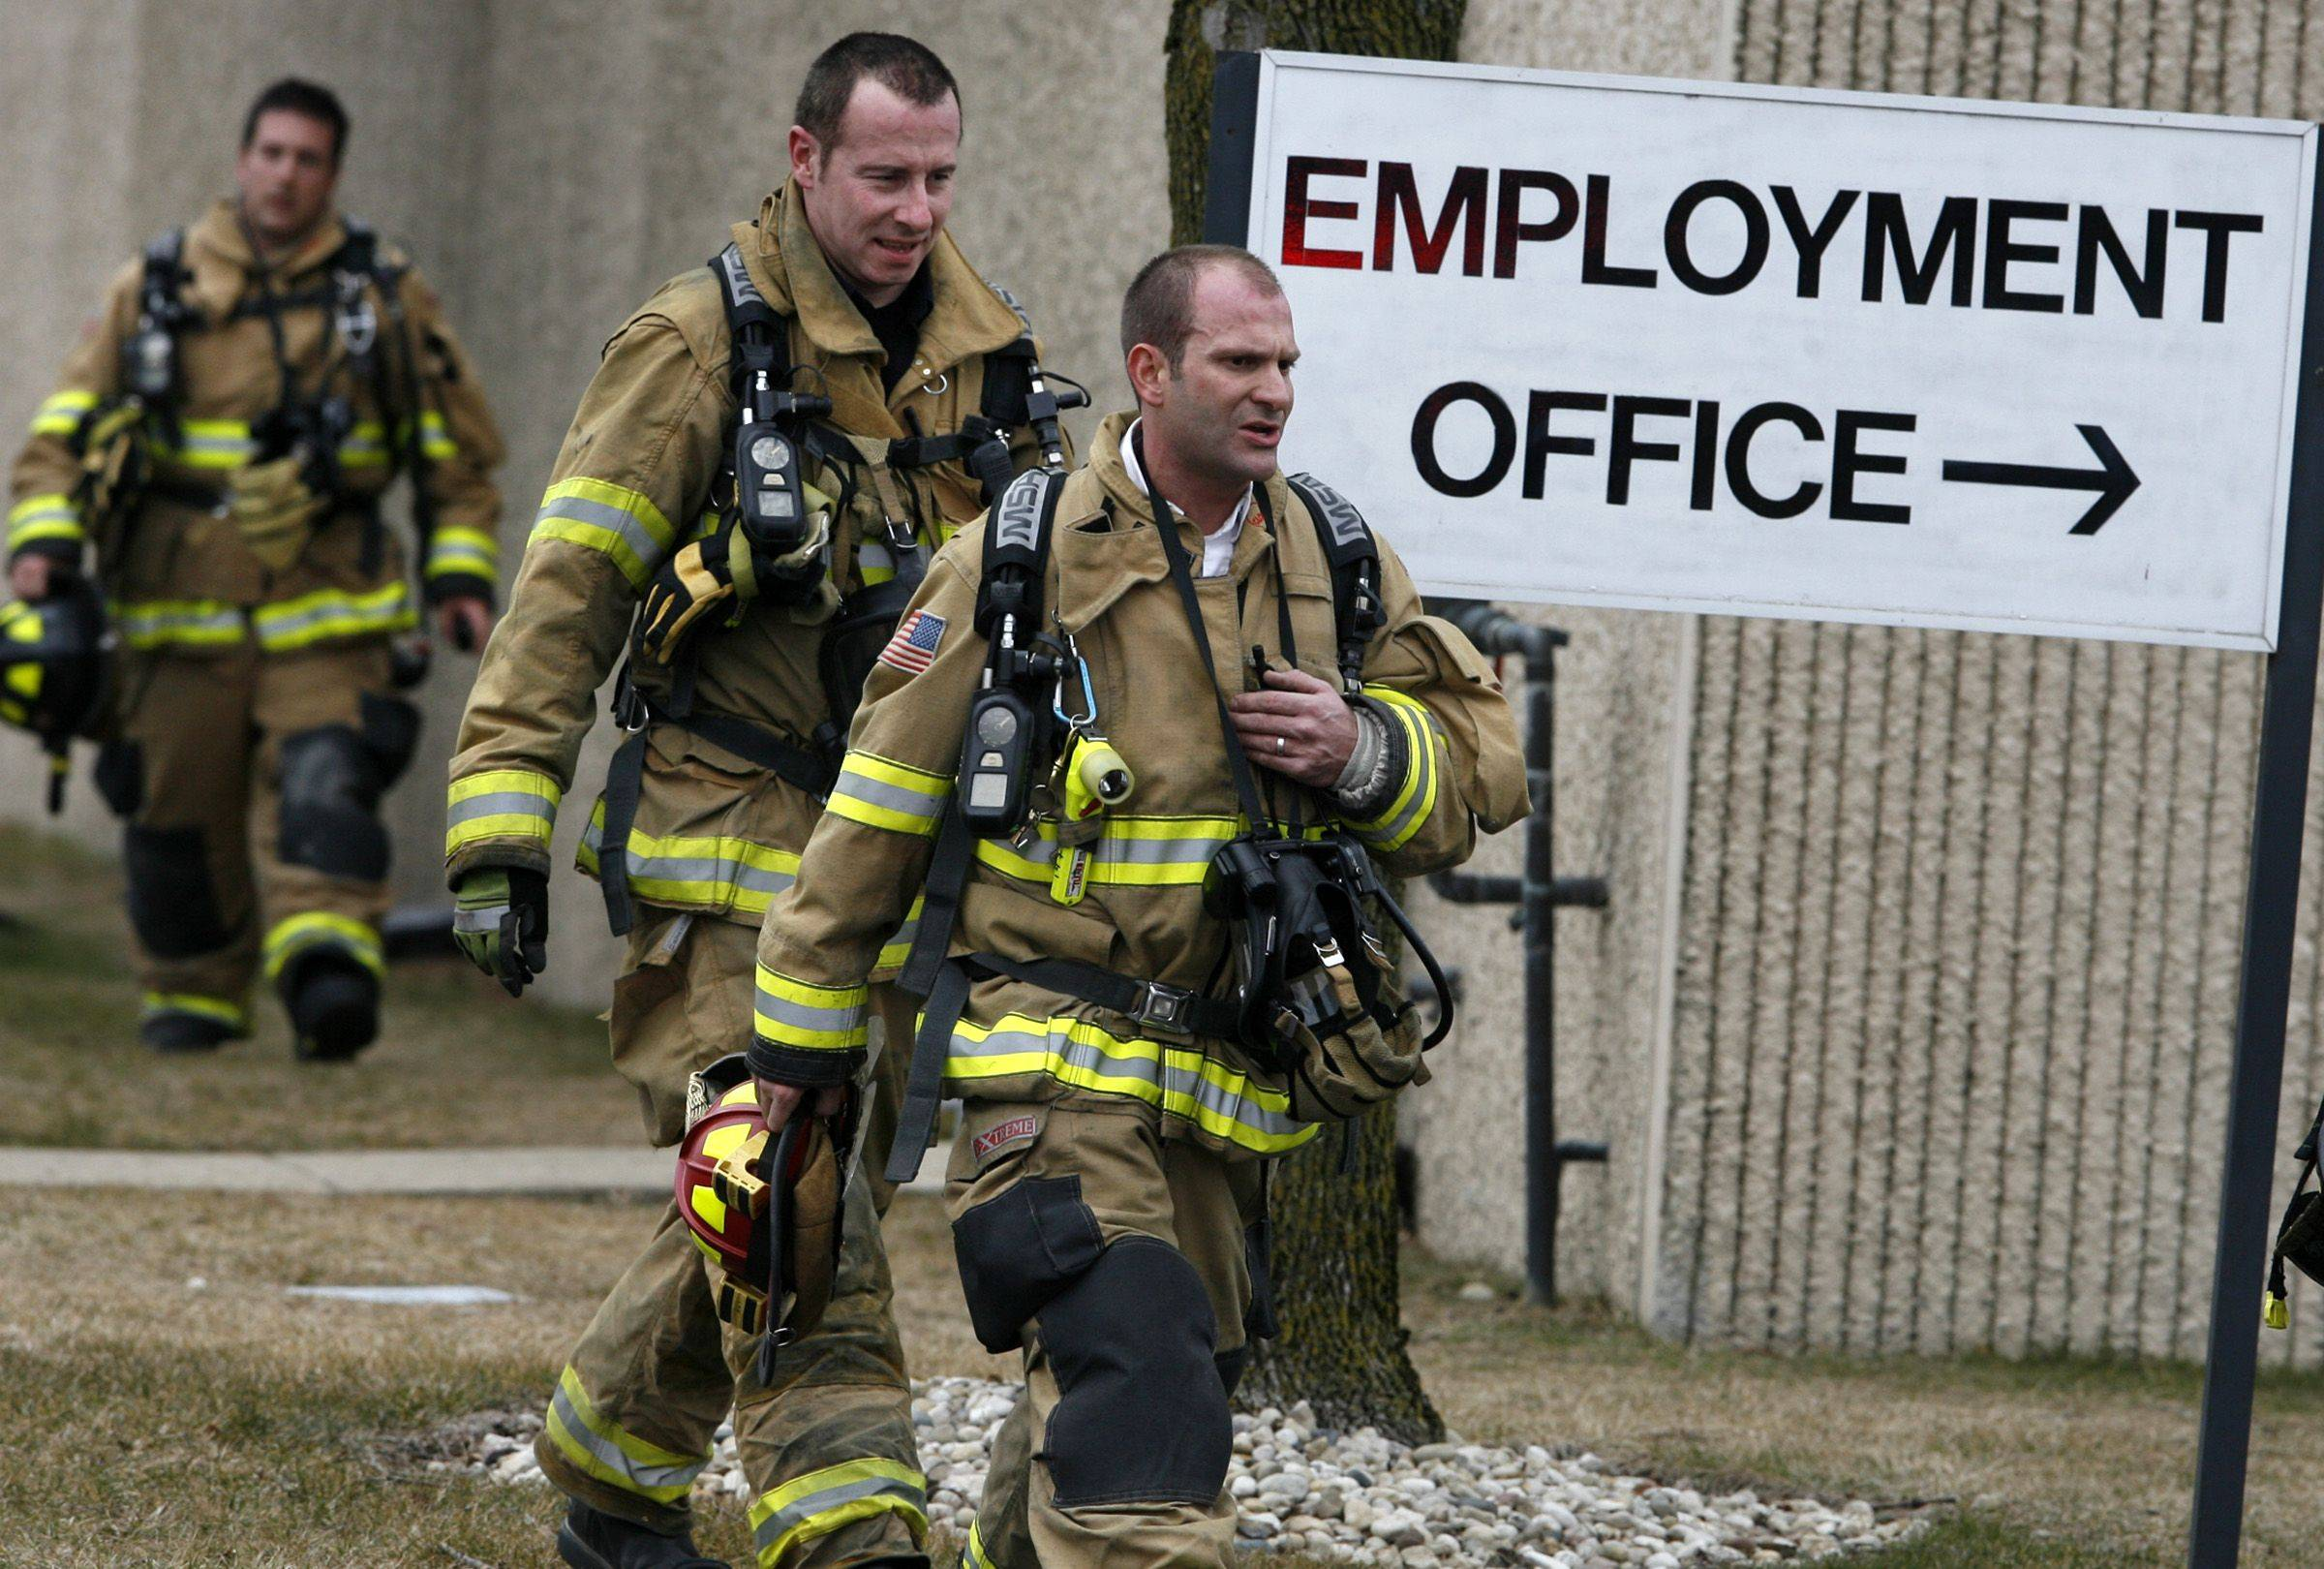 Firefighters exit Durable Packaging International in Wheeling Tuesday while evacuating the facility after an apparent carbon monoxide leak left several employees ill.